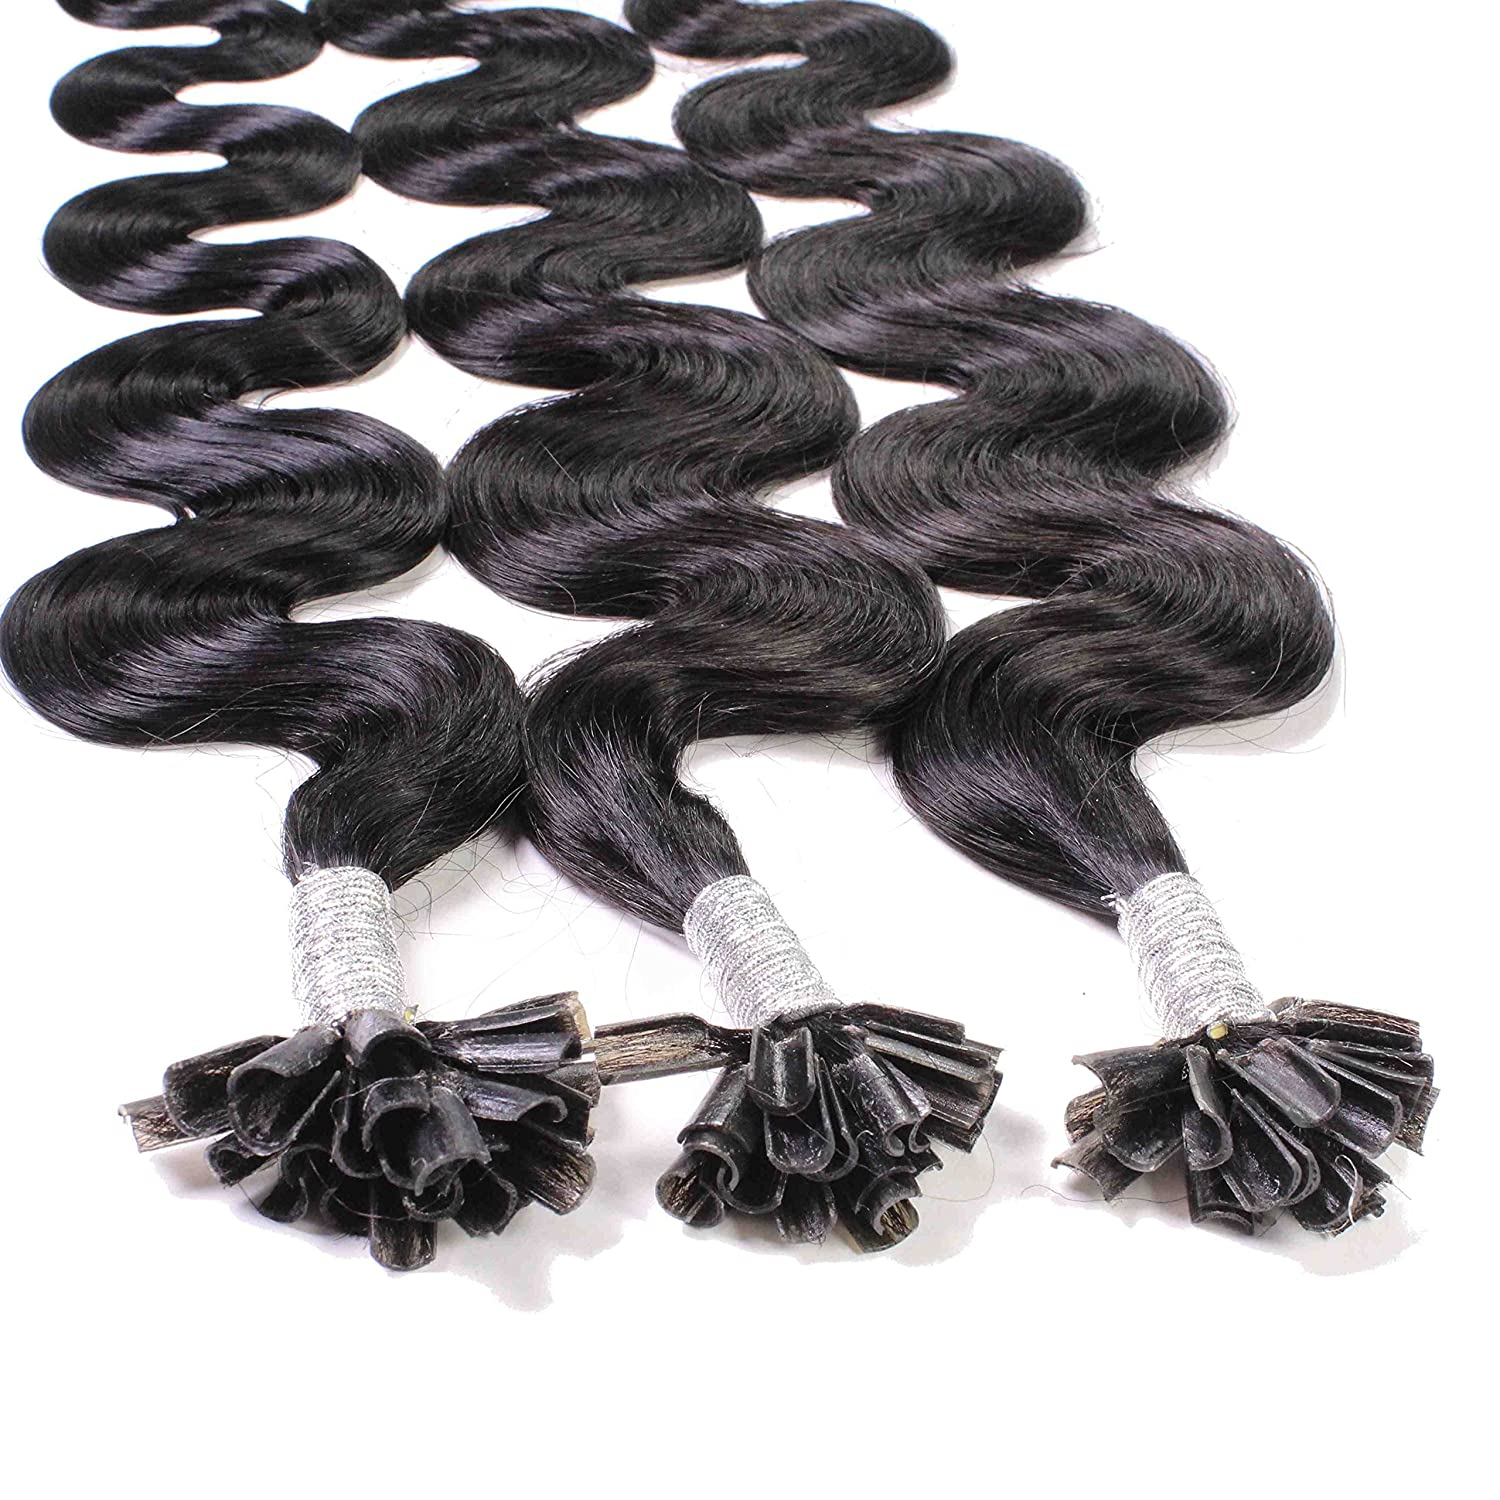 Hair2Heart 100 x 1g Extensiones de Queratina - 60cm - Corrugado, Color 1b Negro Natural: Amazon.es: Belleza